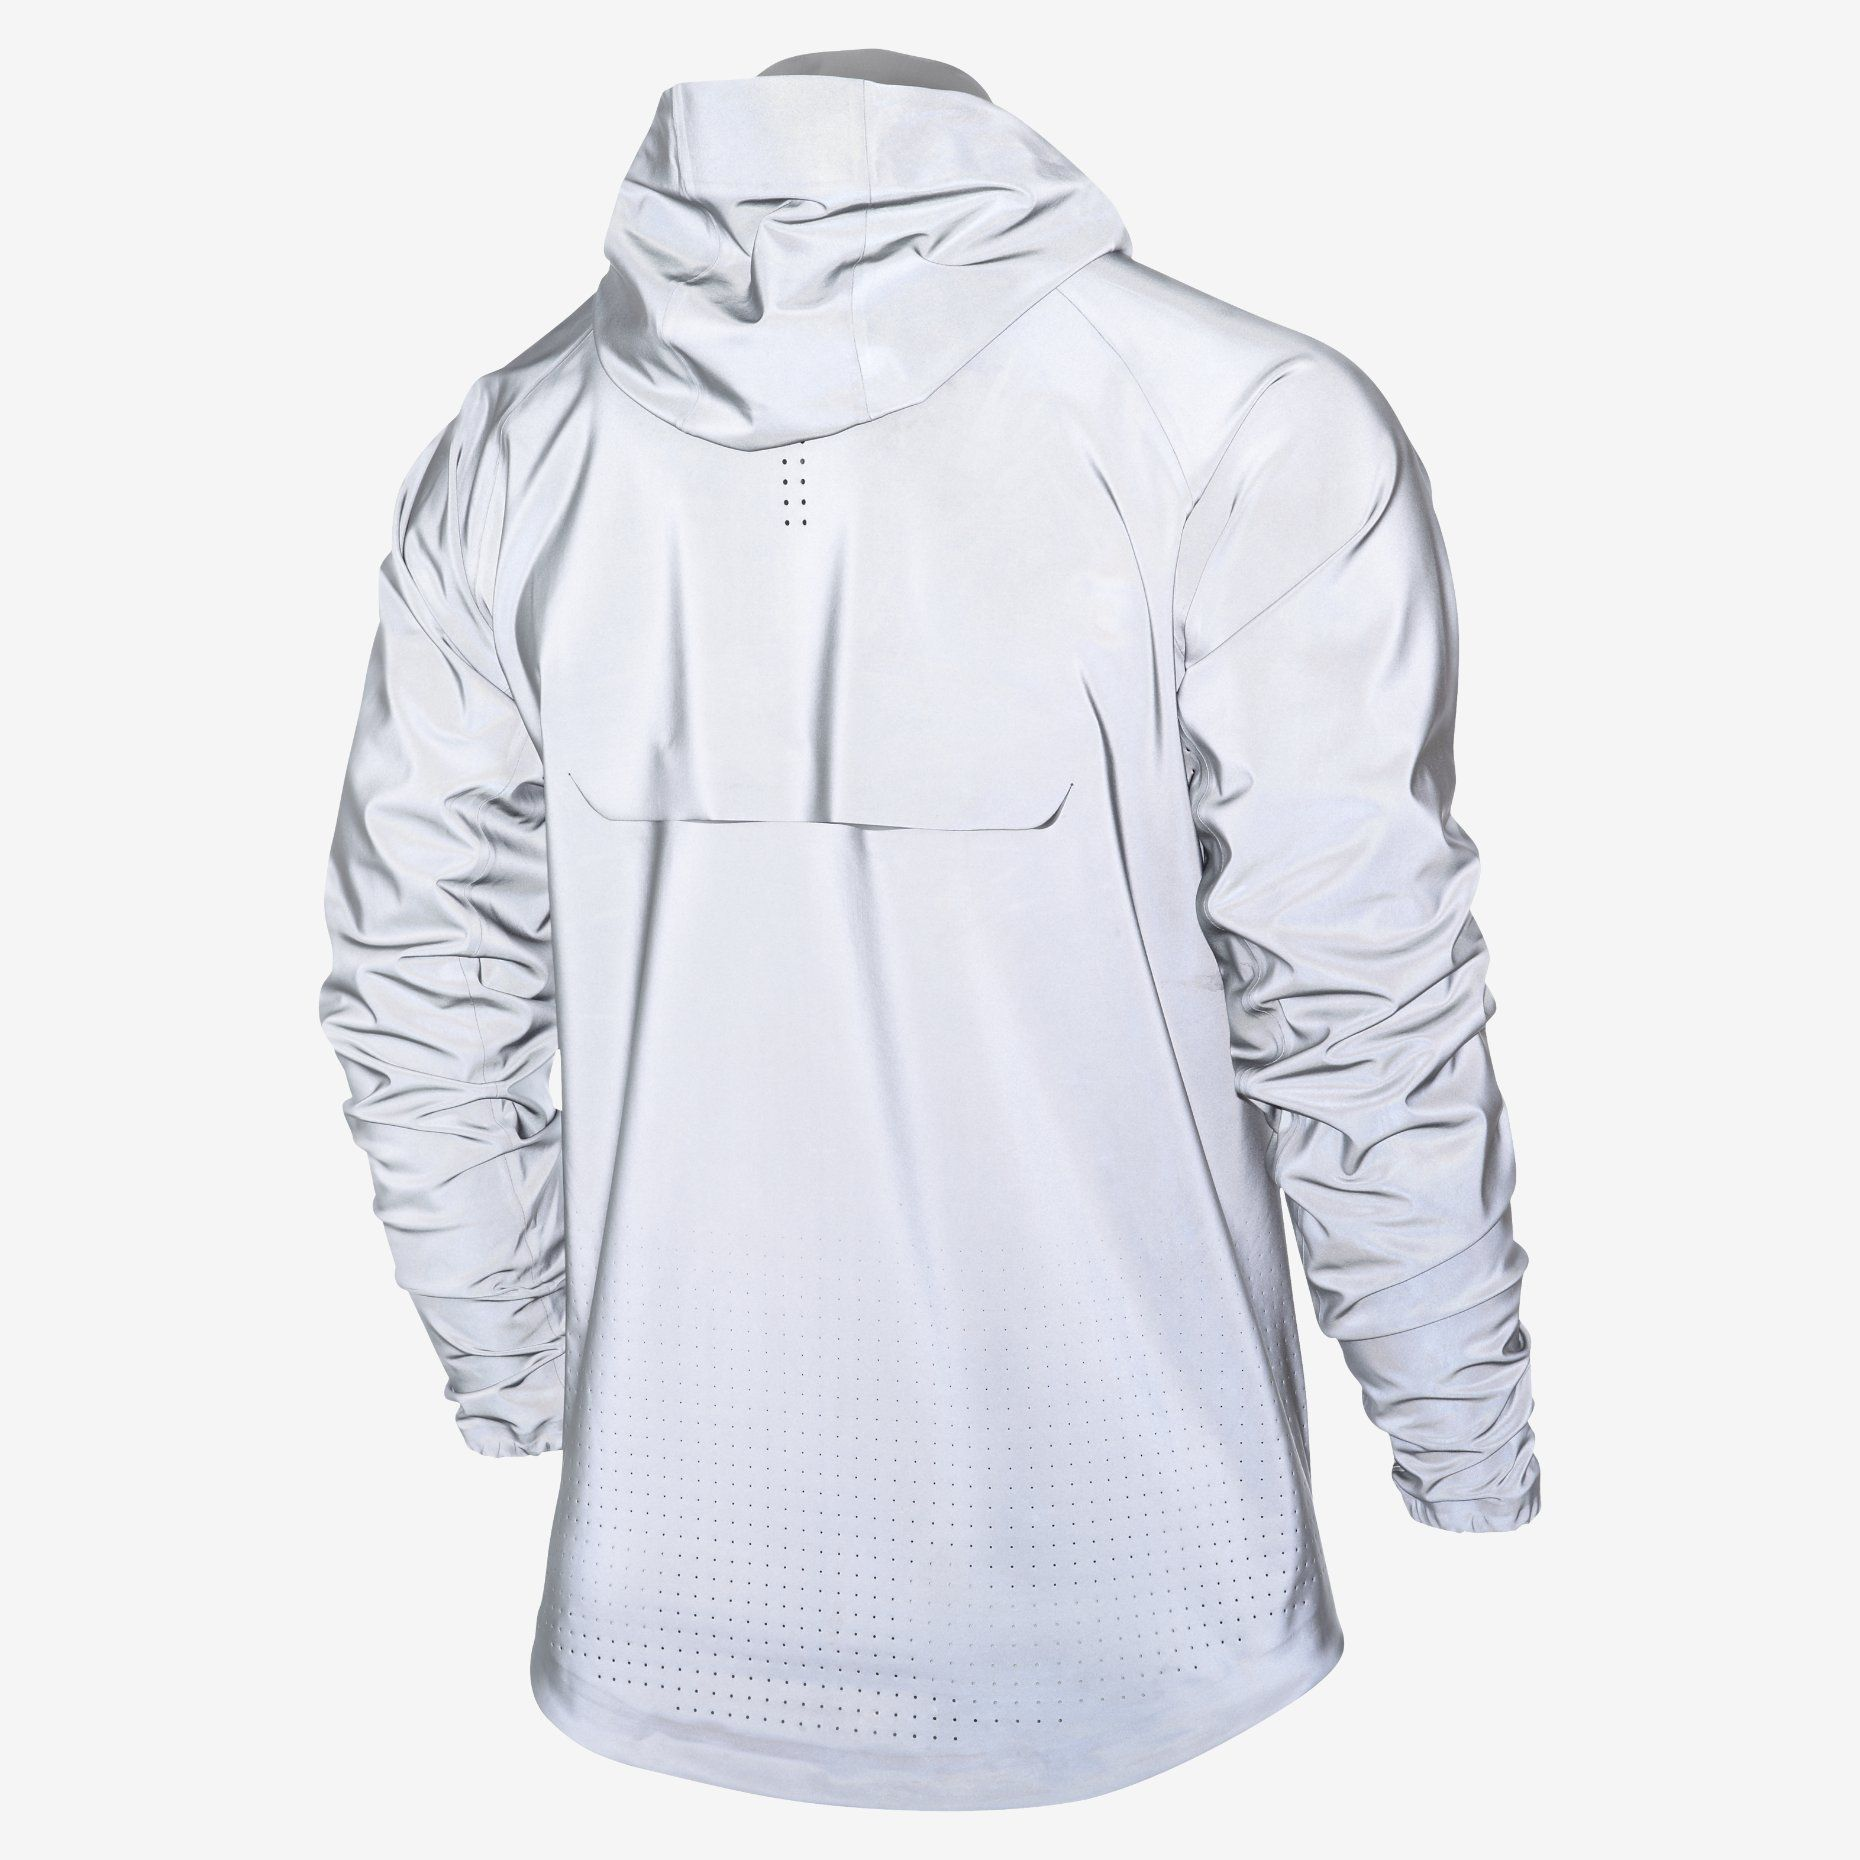 Nike Allover Flash Women's Running Jacket so obnoxious and